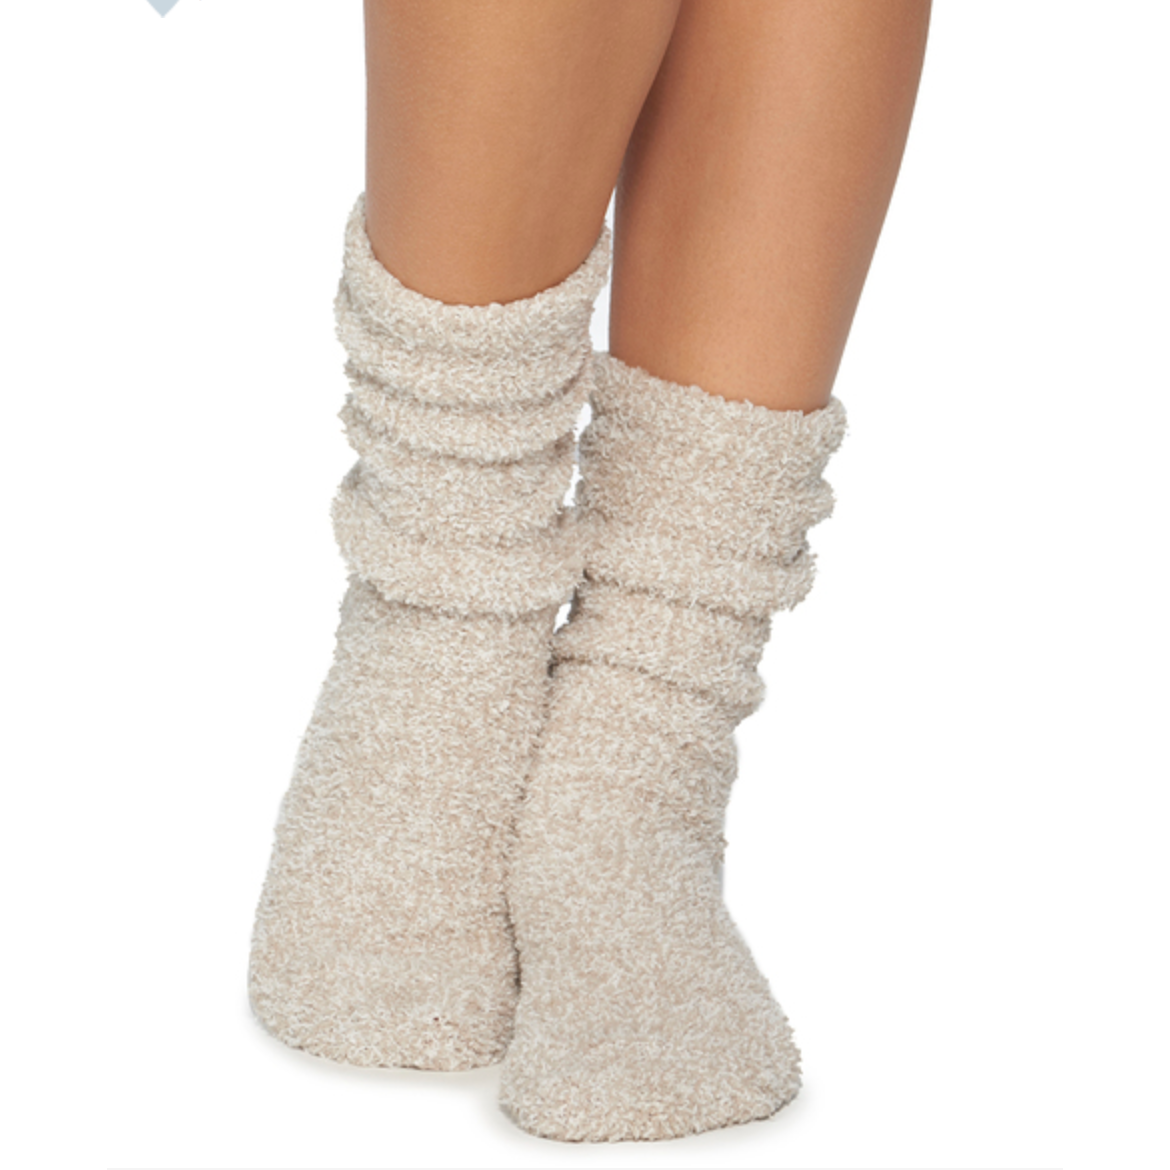 the COZYCHIC® HEATHERED OYSTER WOMEN'S SOCKS